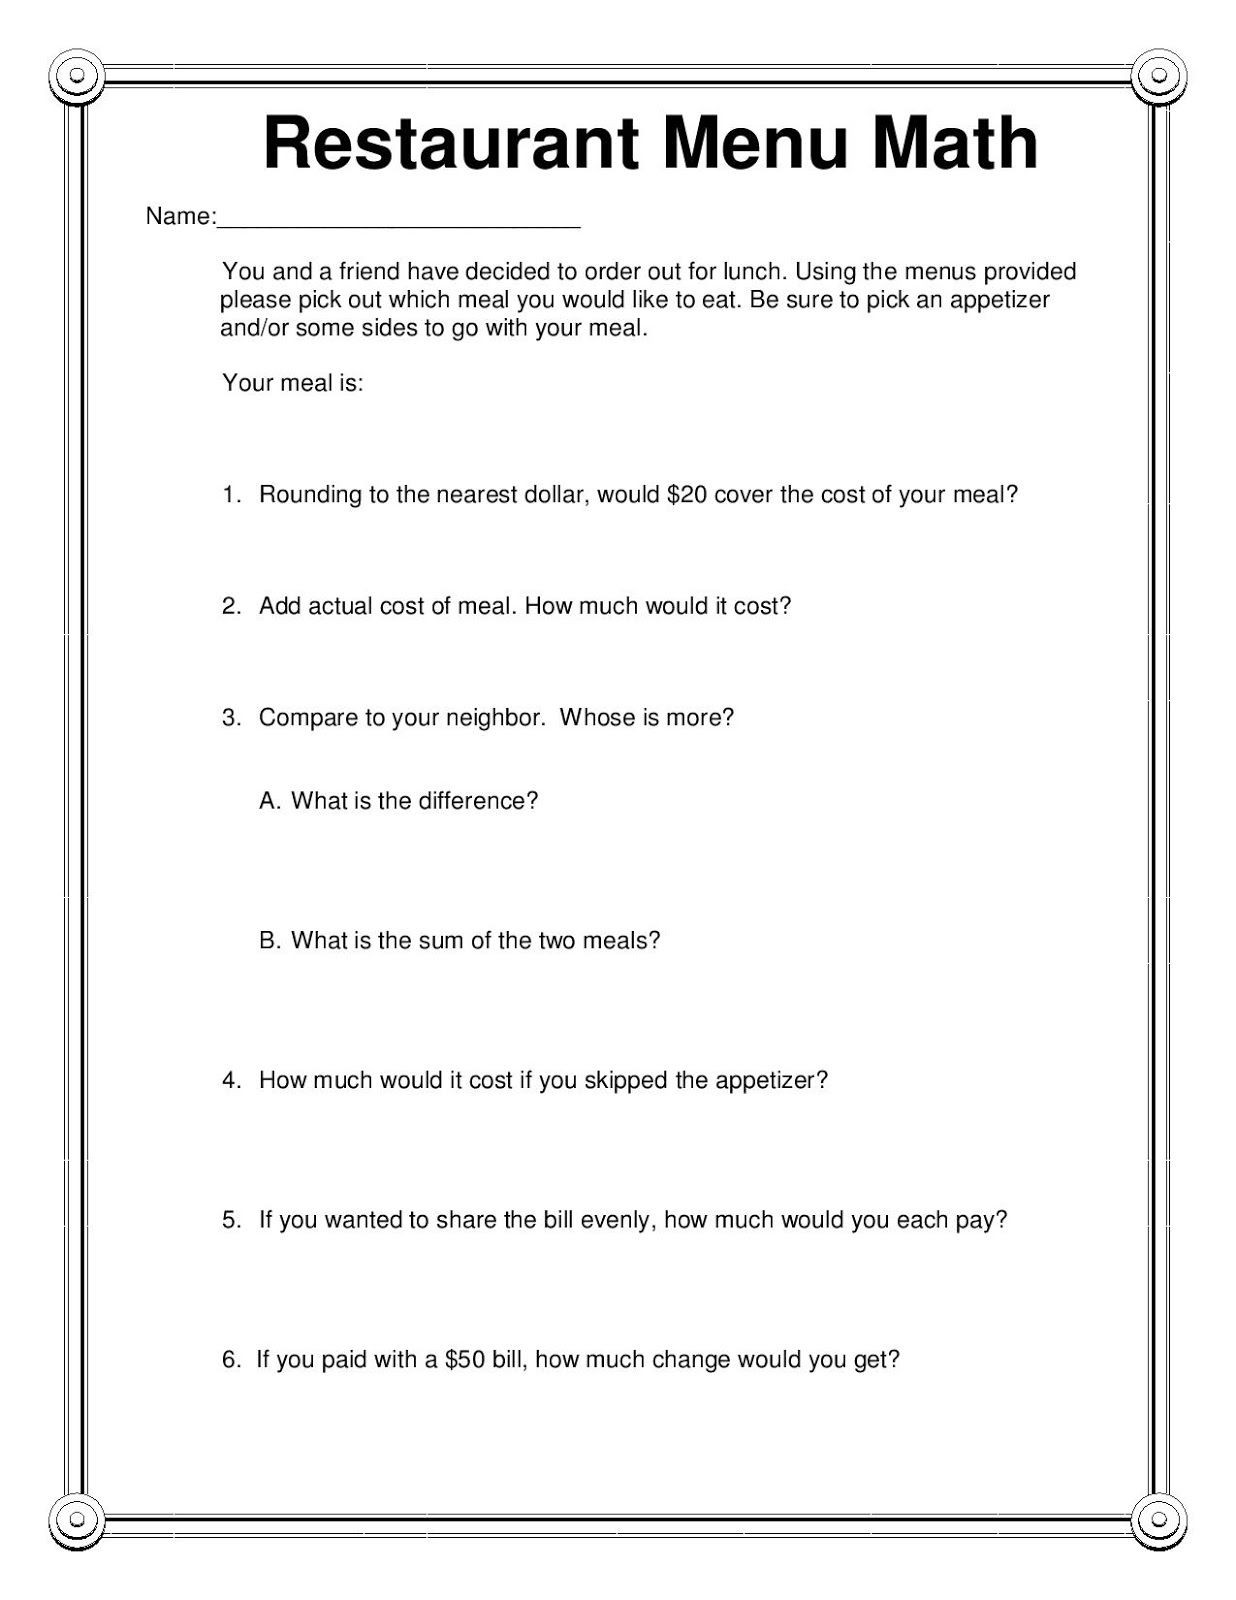 Restaurant Menu Math Worksheets Pin by Bethany Hunter On Things for My Classroom